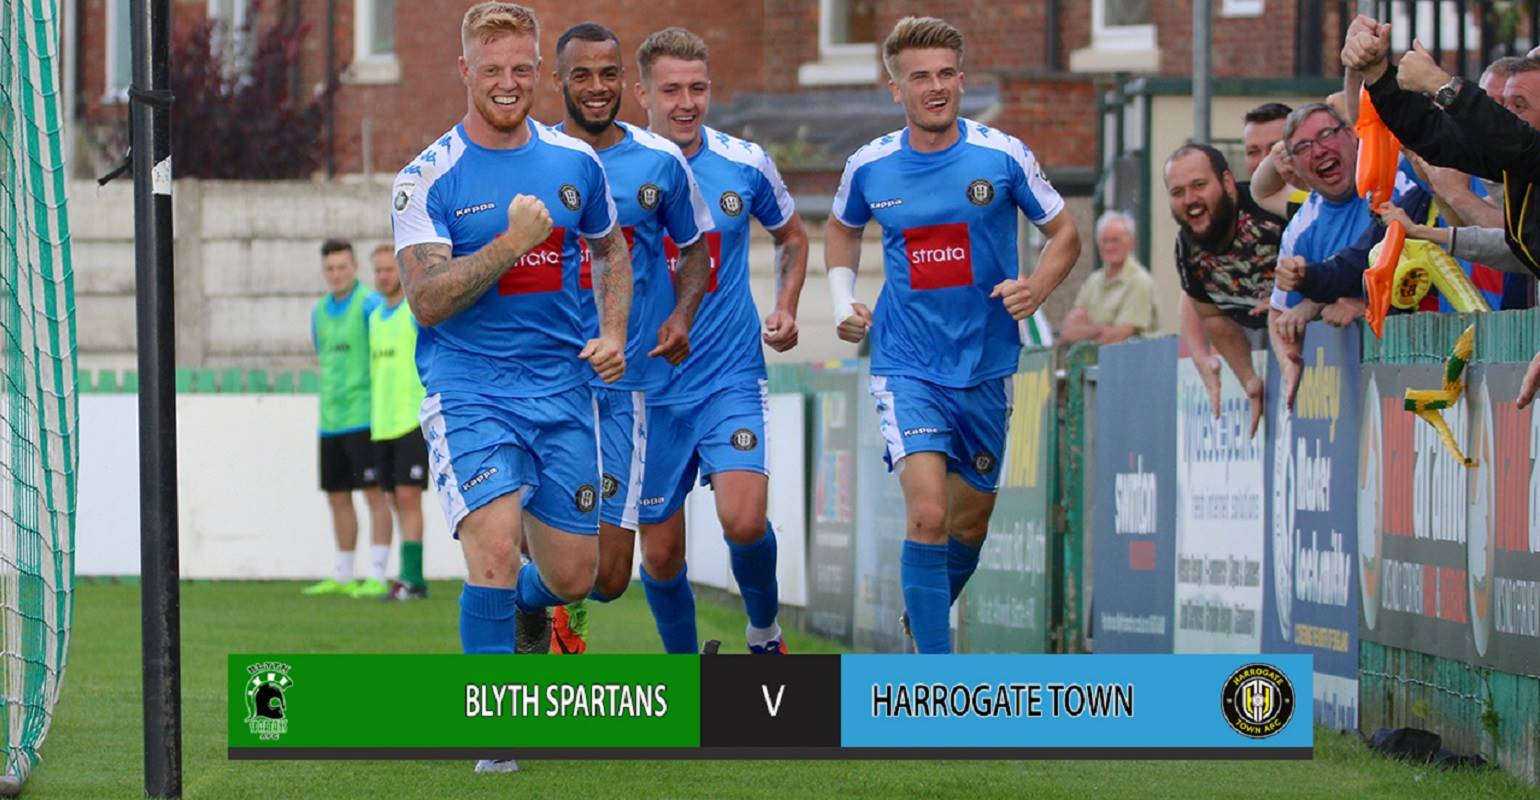 HIGHLIGHTS | Blyth Spartans 0-2 Harrogate Town